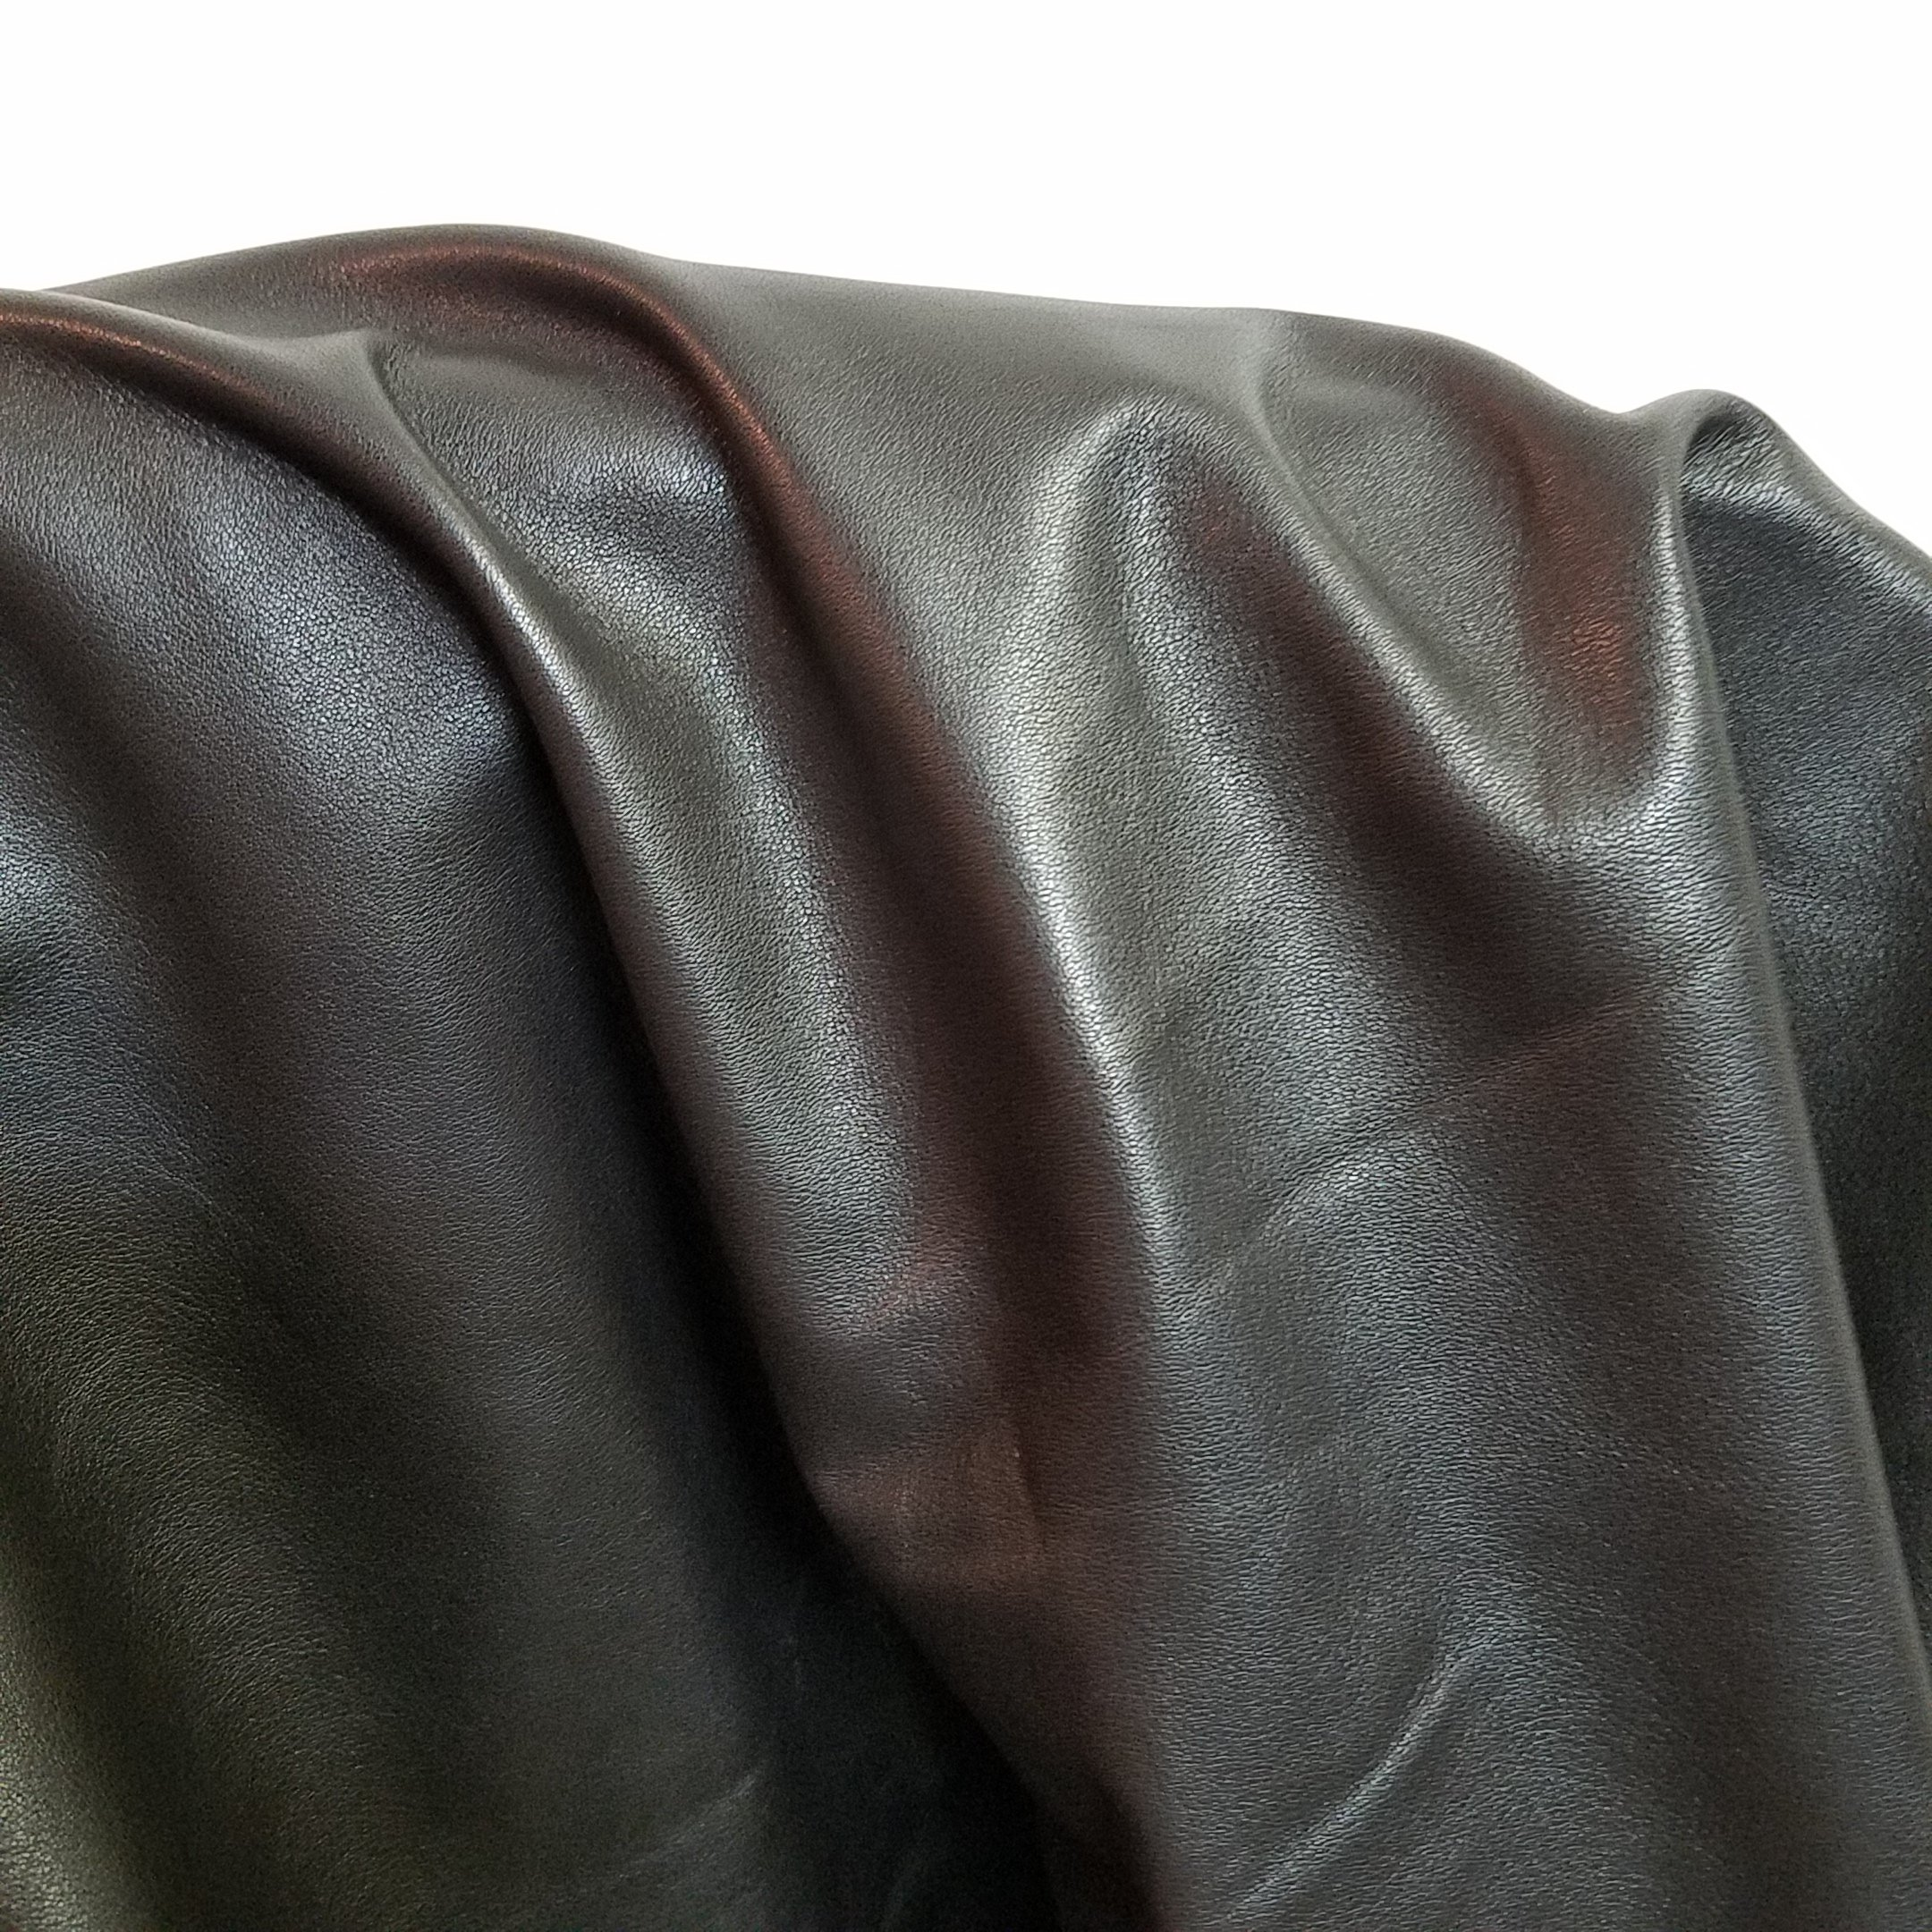 DARK BROWN COW HIDE LEATHER SKINS 10''x20'' CUTTING 1.5-2.0 OZ. UPHOLSTERY BOOKBINDING CHAP NAT Leathers (10''x20'')